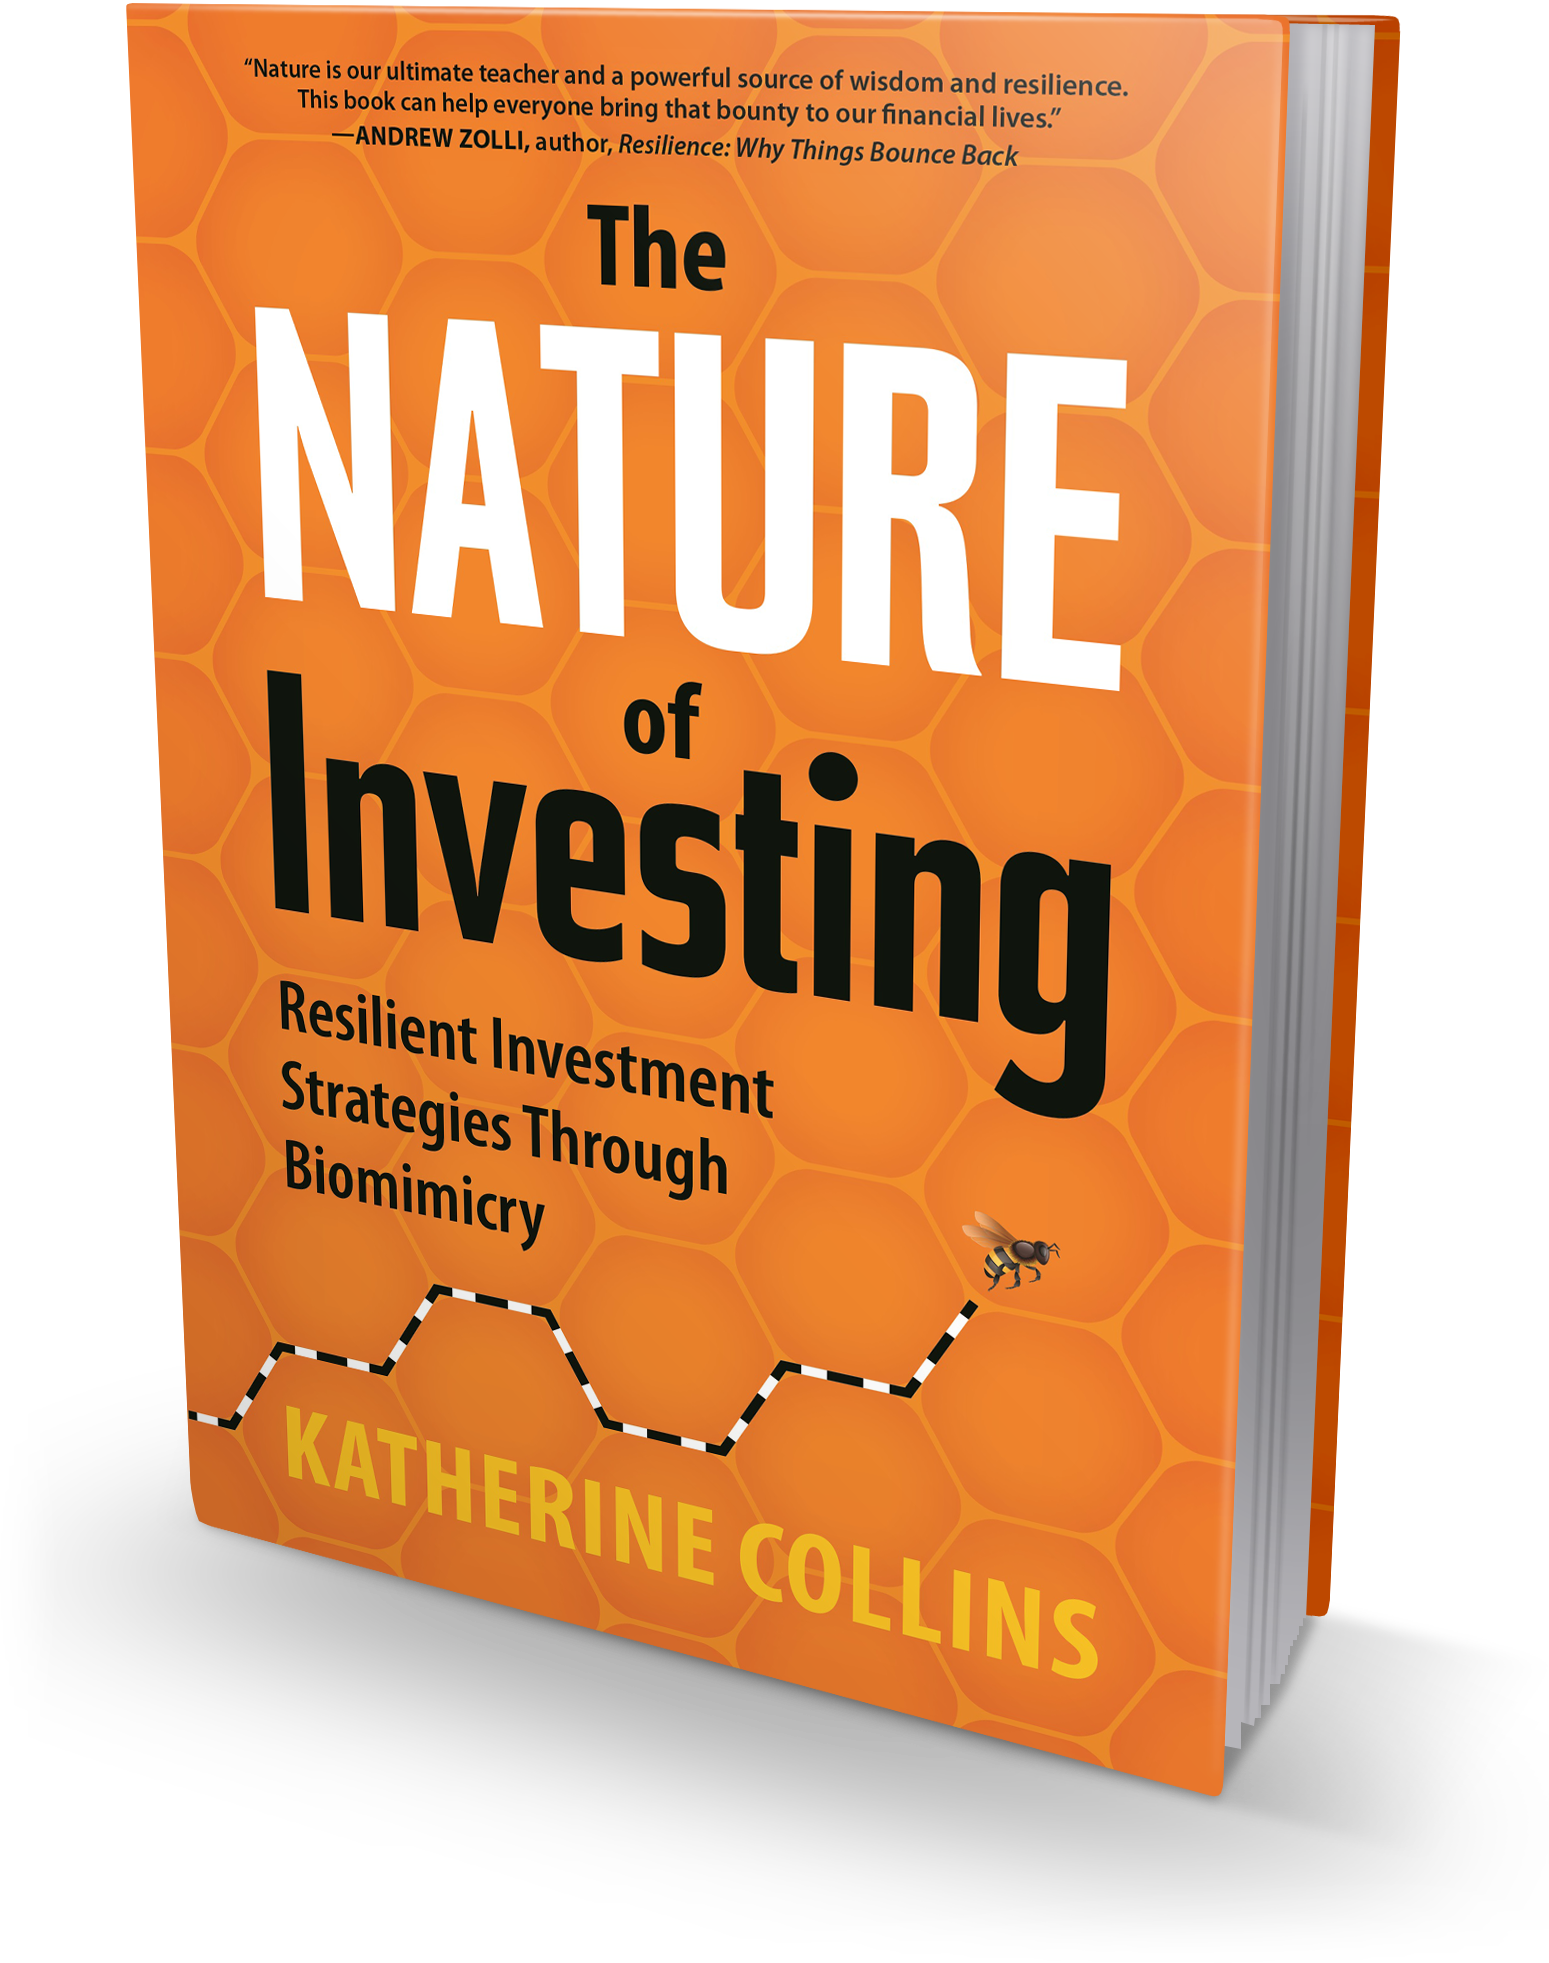 The Nature of Investing book cover